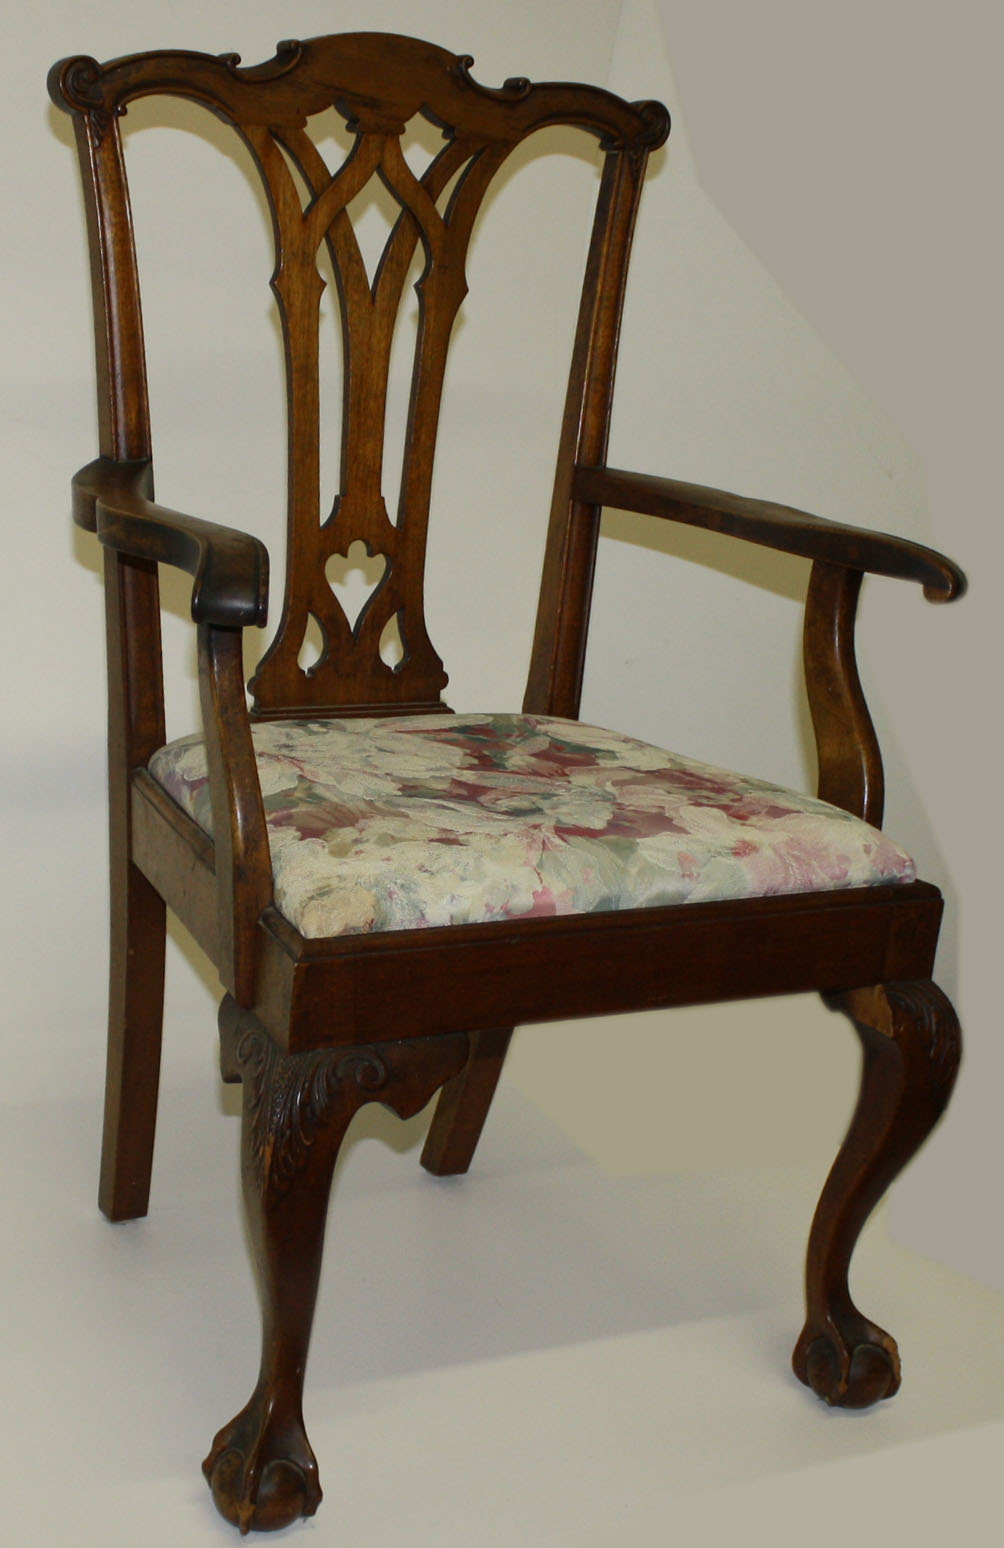 Set Of 8 Centennial Bench Made Chippendale Style Chairs.JPG